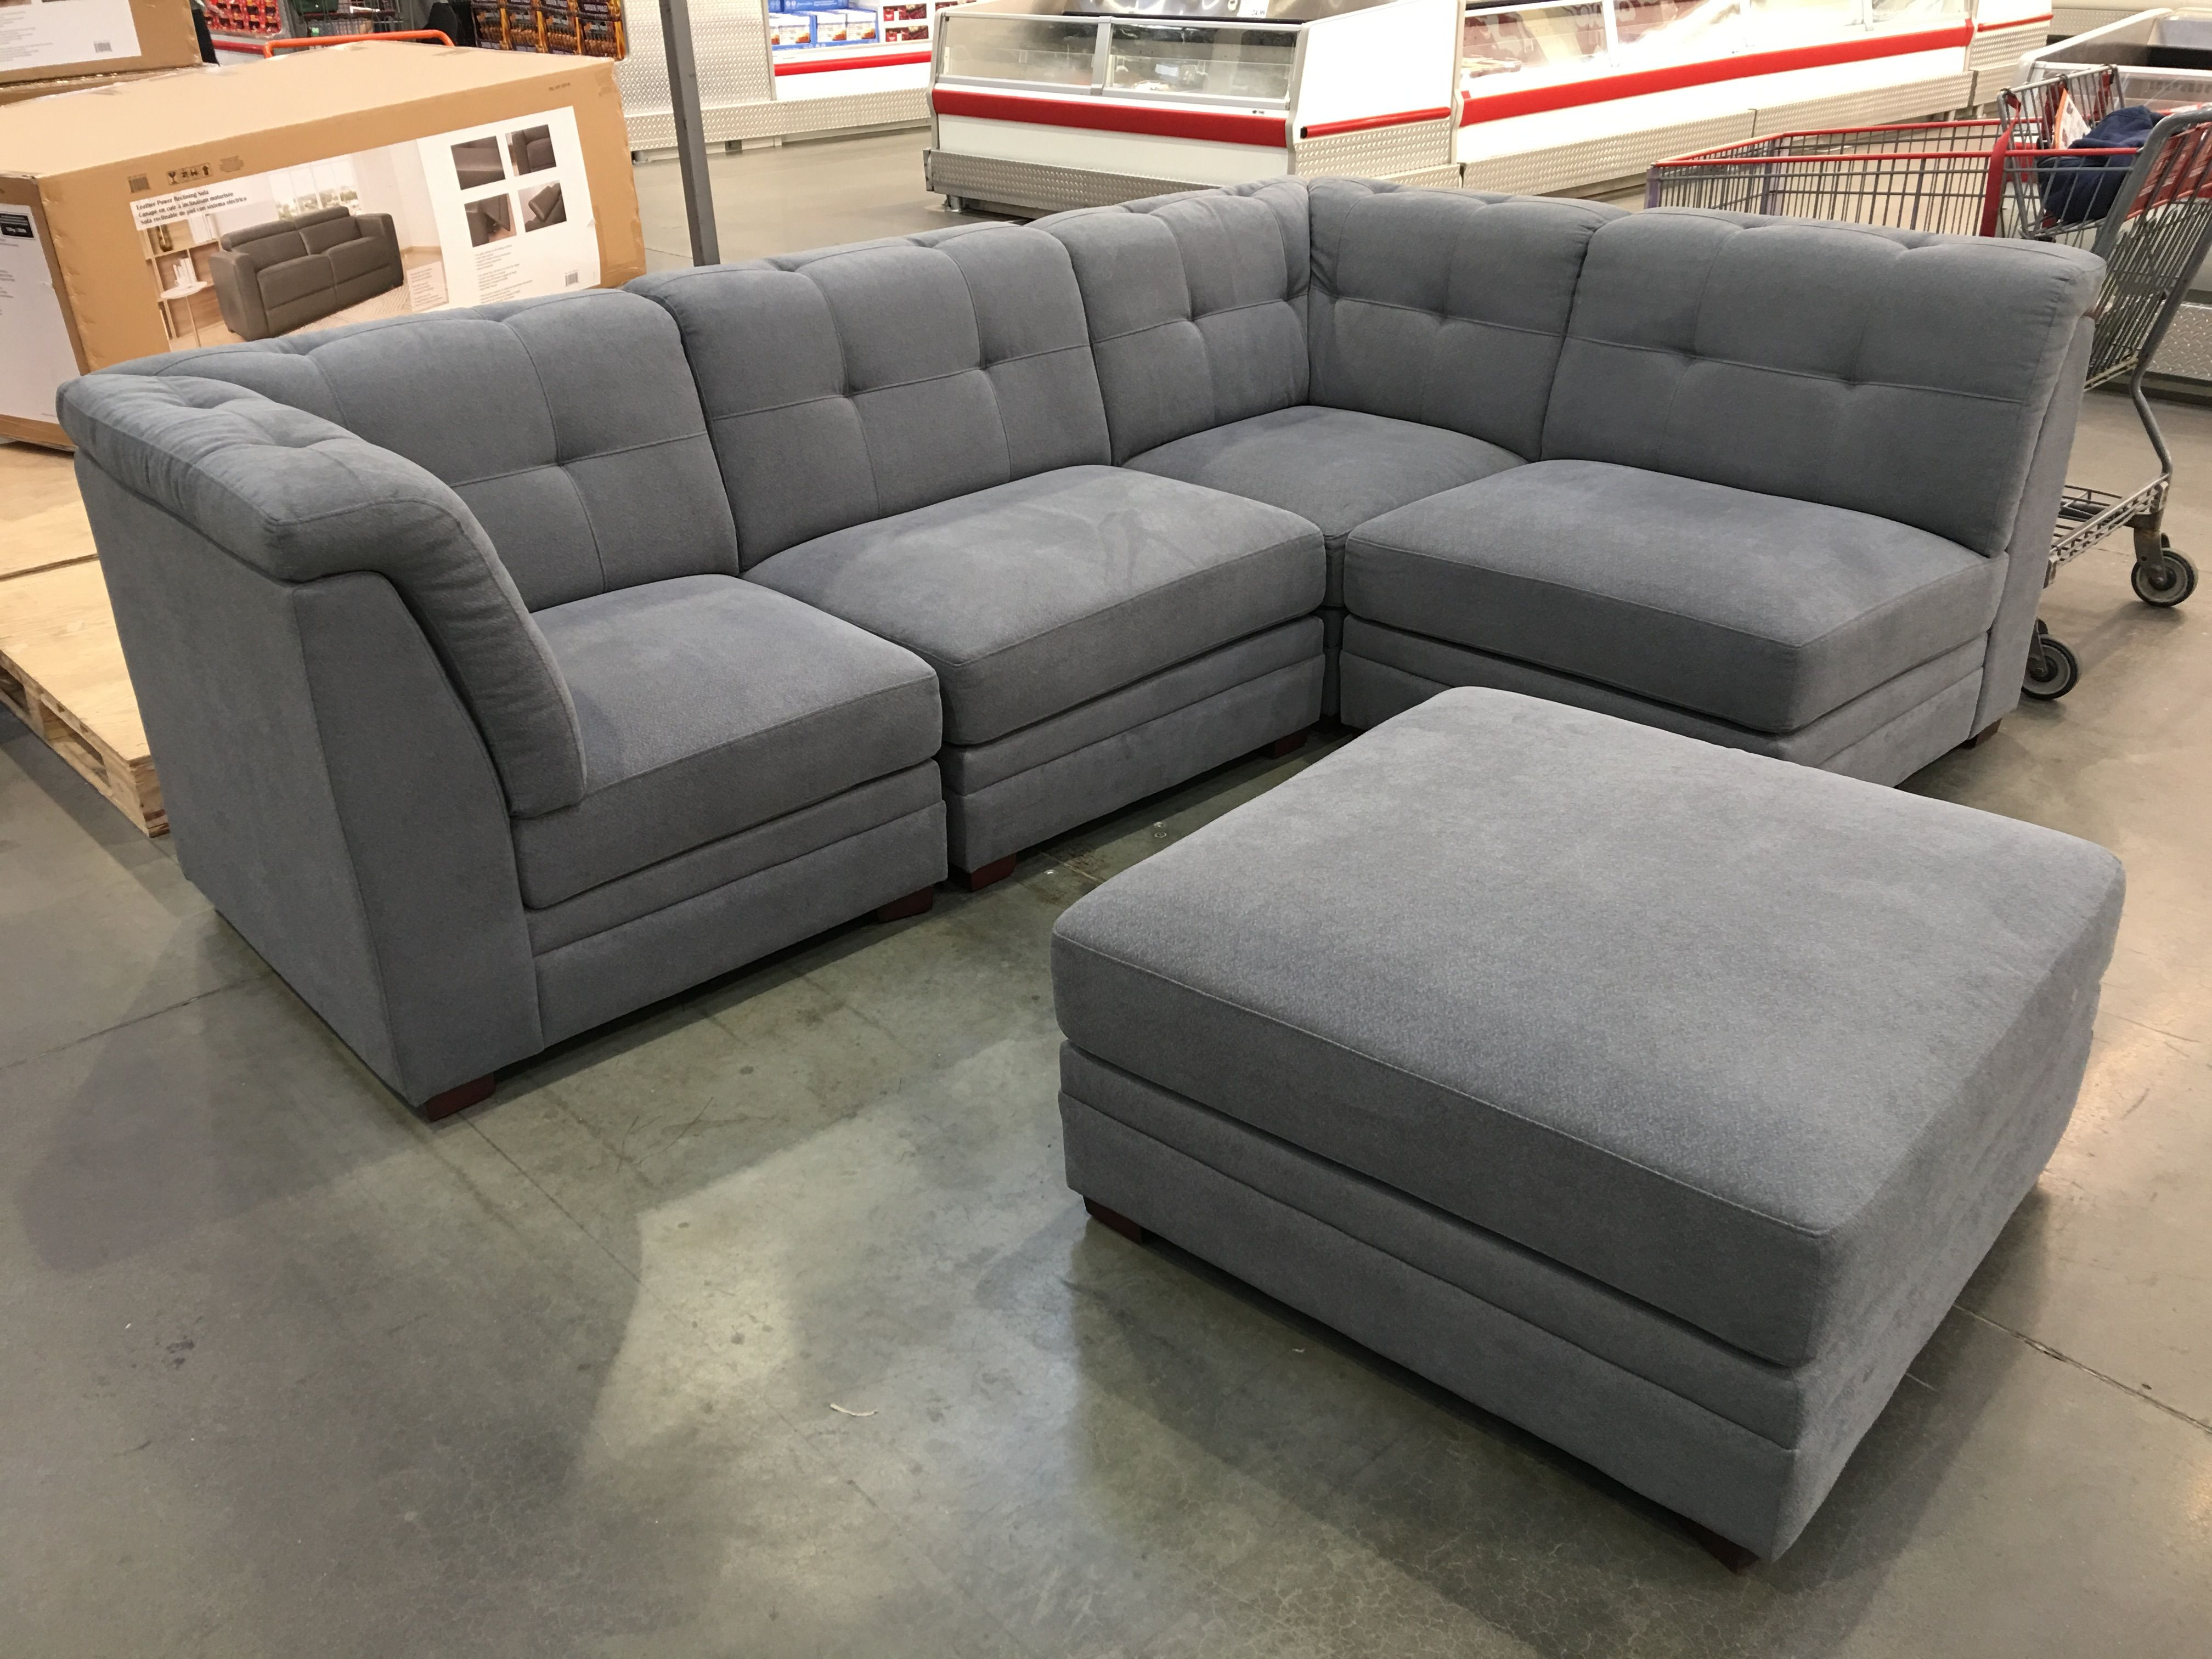 Costco Couch Sofa Sectional Sectional Sofa Costco Couch Couch